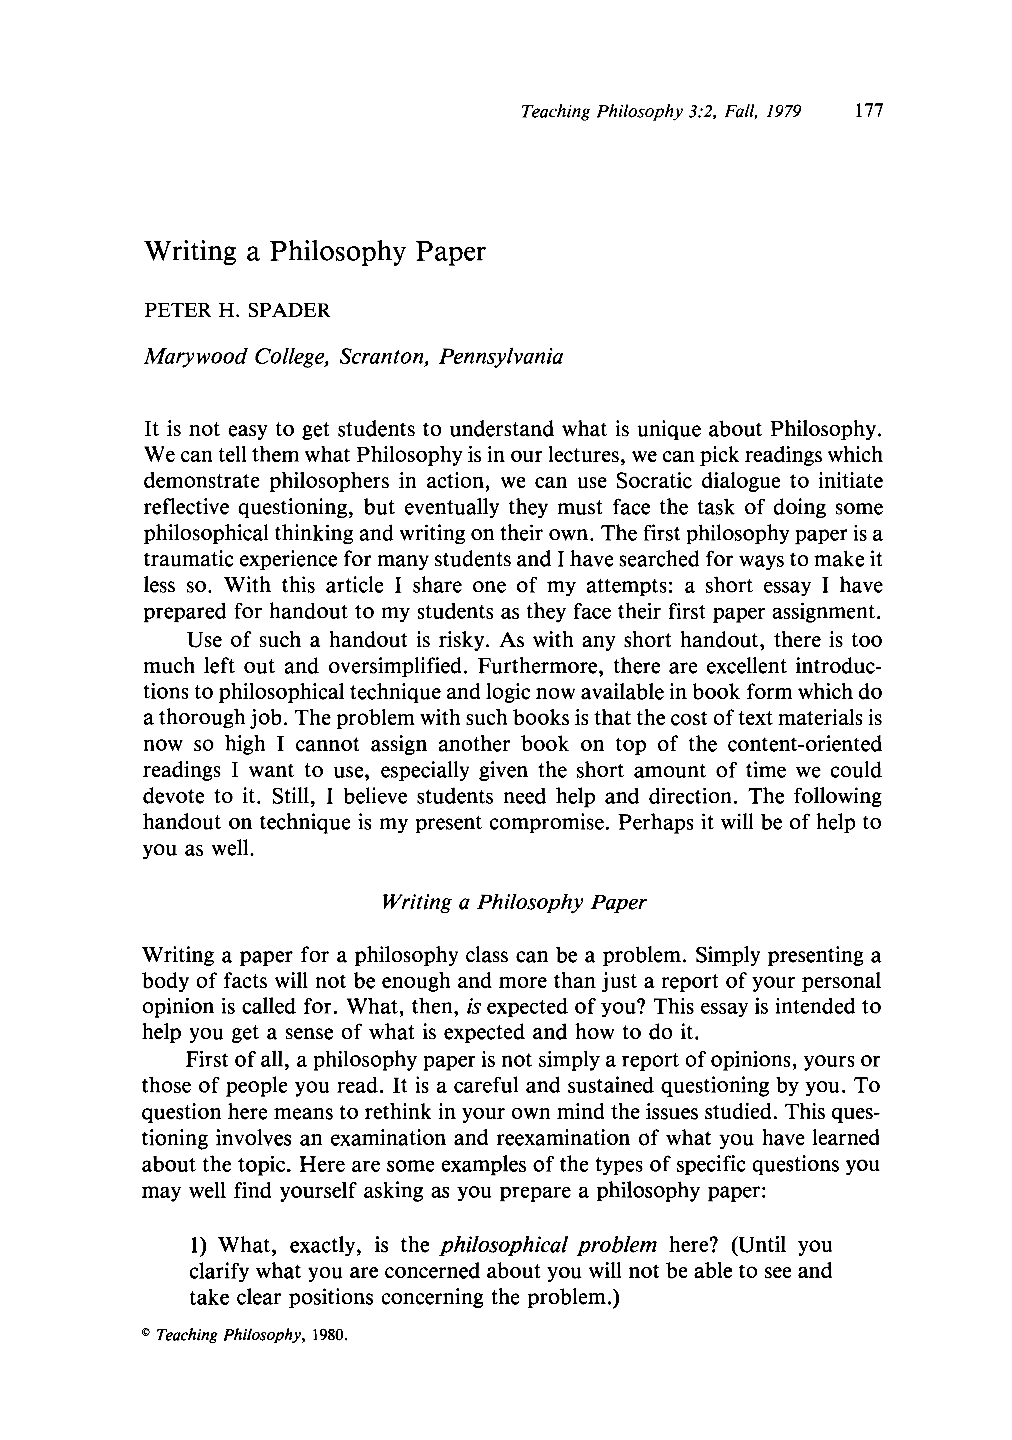 Thesis Persuasive Essay Essay About Philosophy Essay Education Philosophy Research Paper A Philosophical  Essay Research Paper Academic Servicea Philosophical Essay About Business also Narrative Essay Thesis Essays On Philosophy Essay About Philosophy Essay Education  English Essay Writing Examples